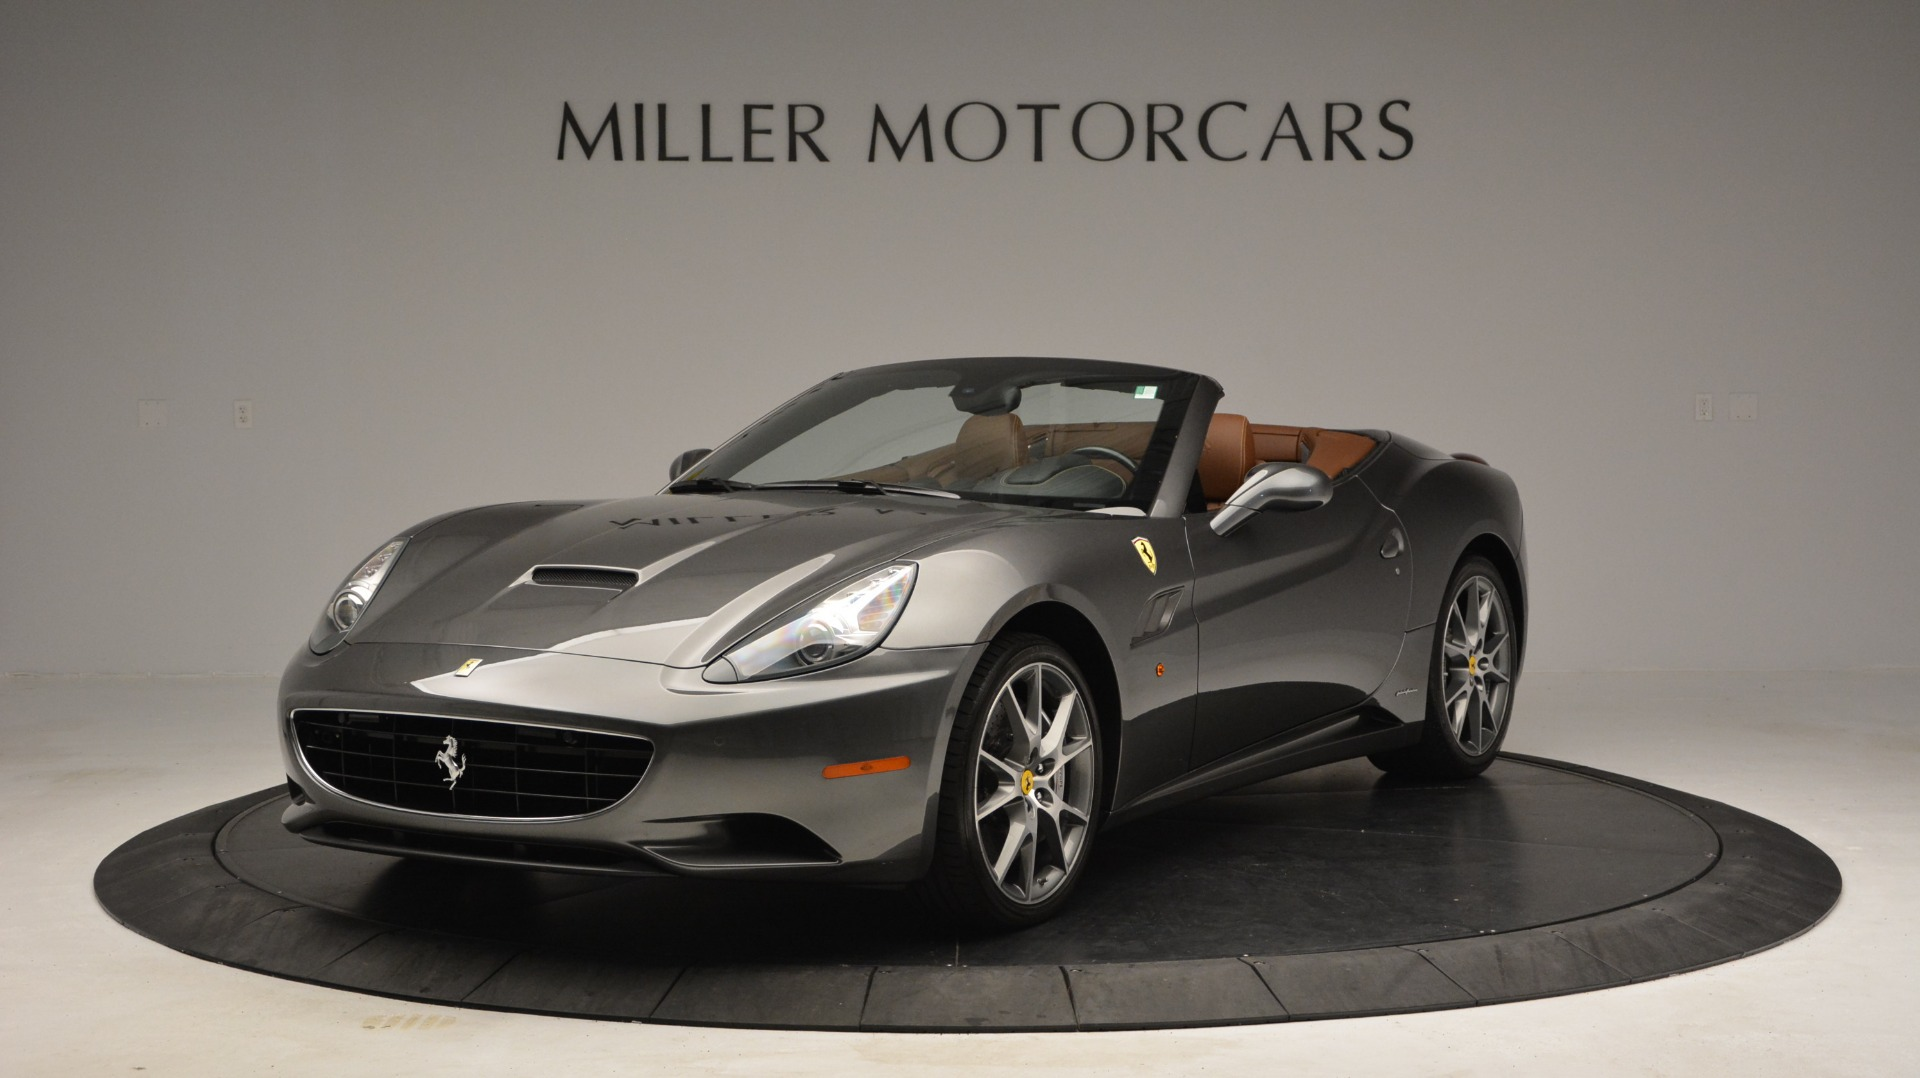 Used 2011 Ferrari California for sale Sold at Aston Martin of Greenwich in Greenwich CT 06830 1